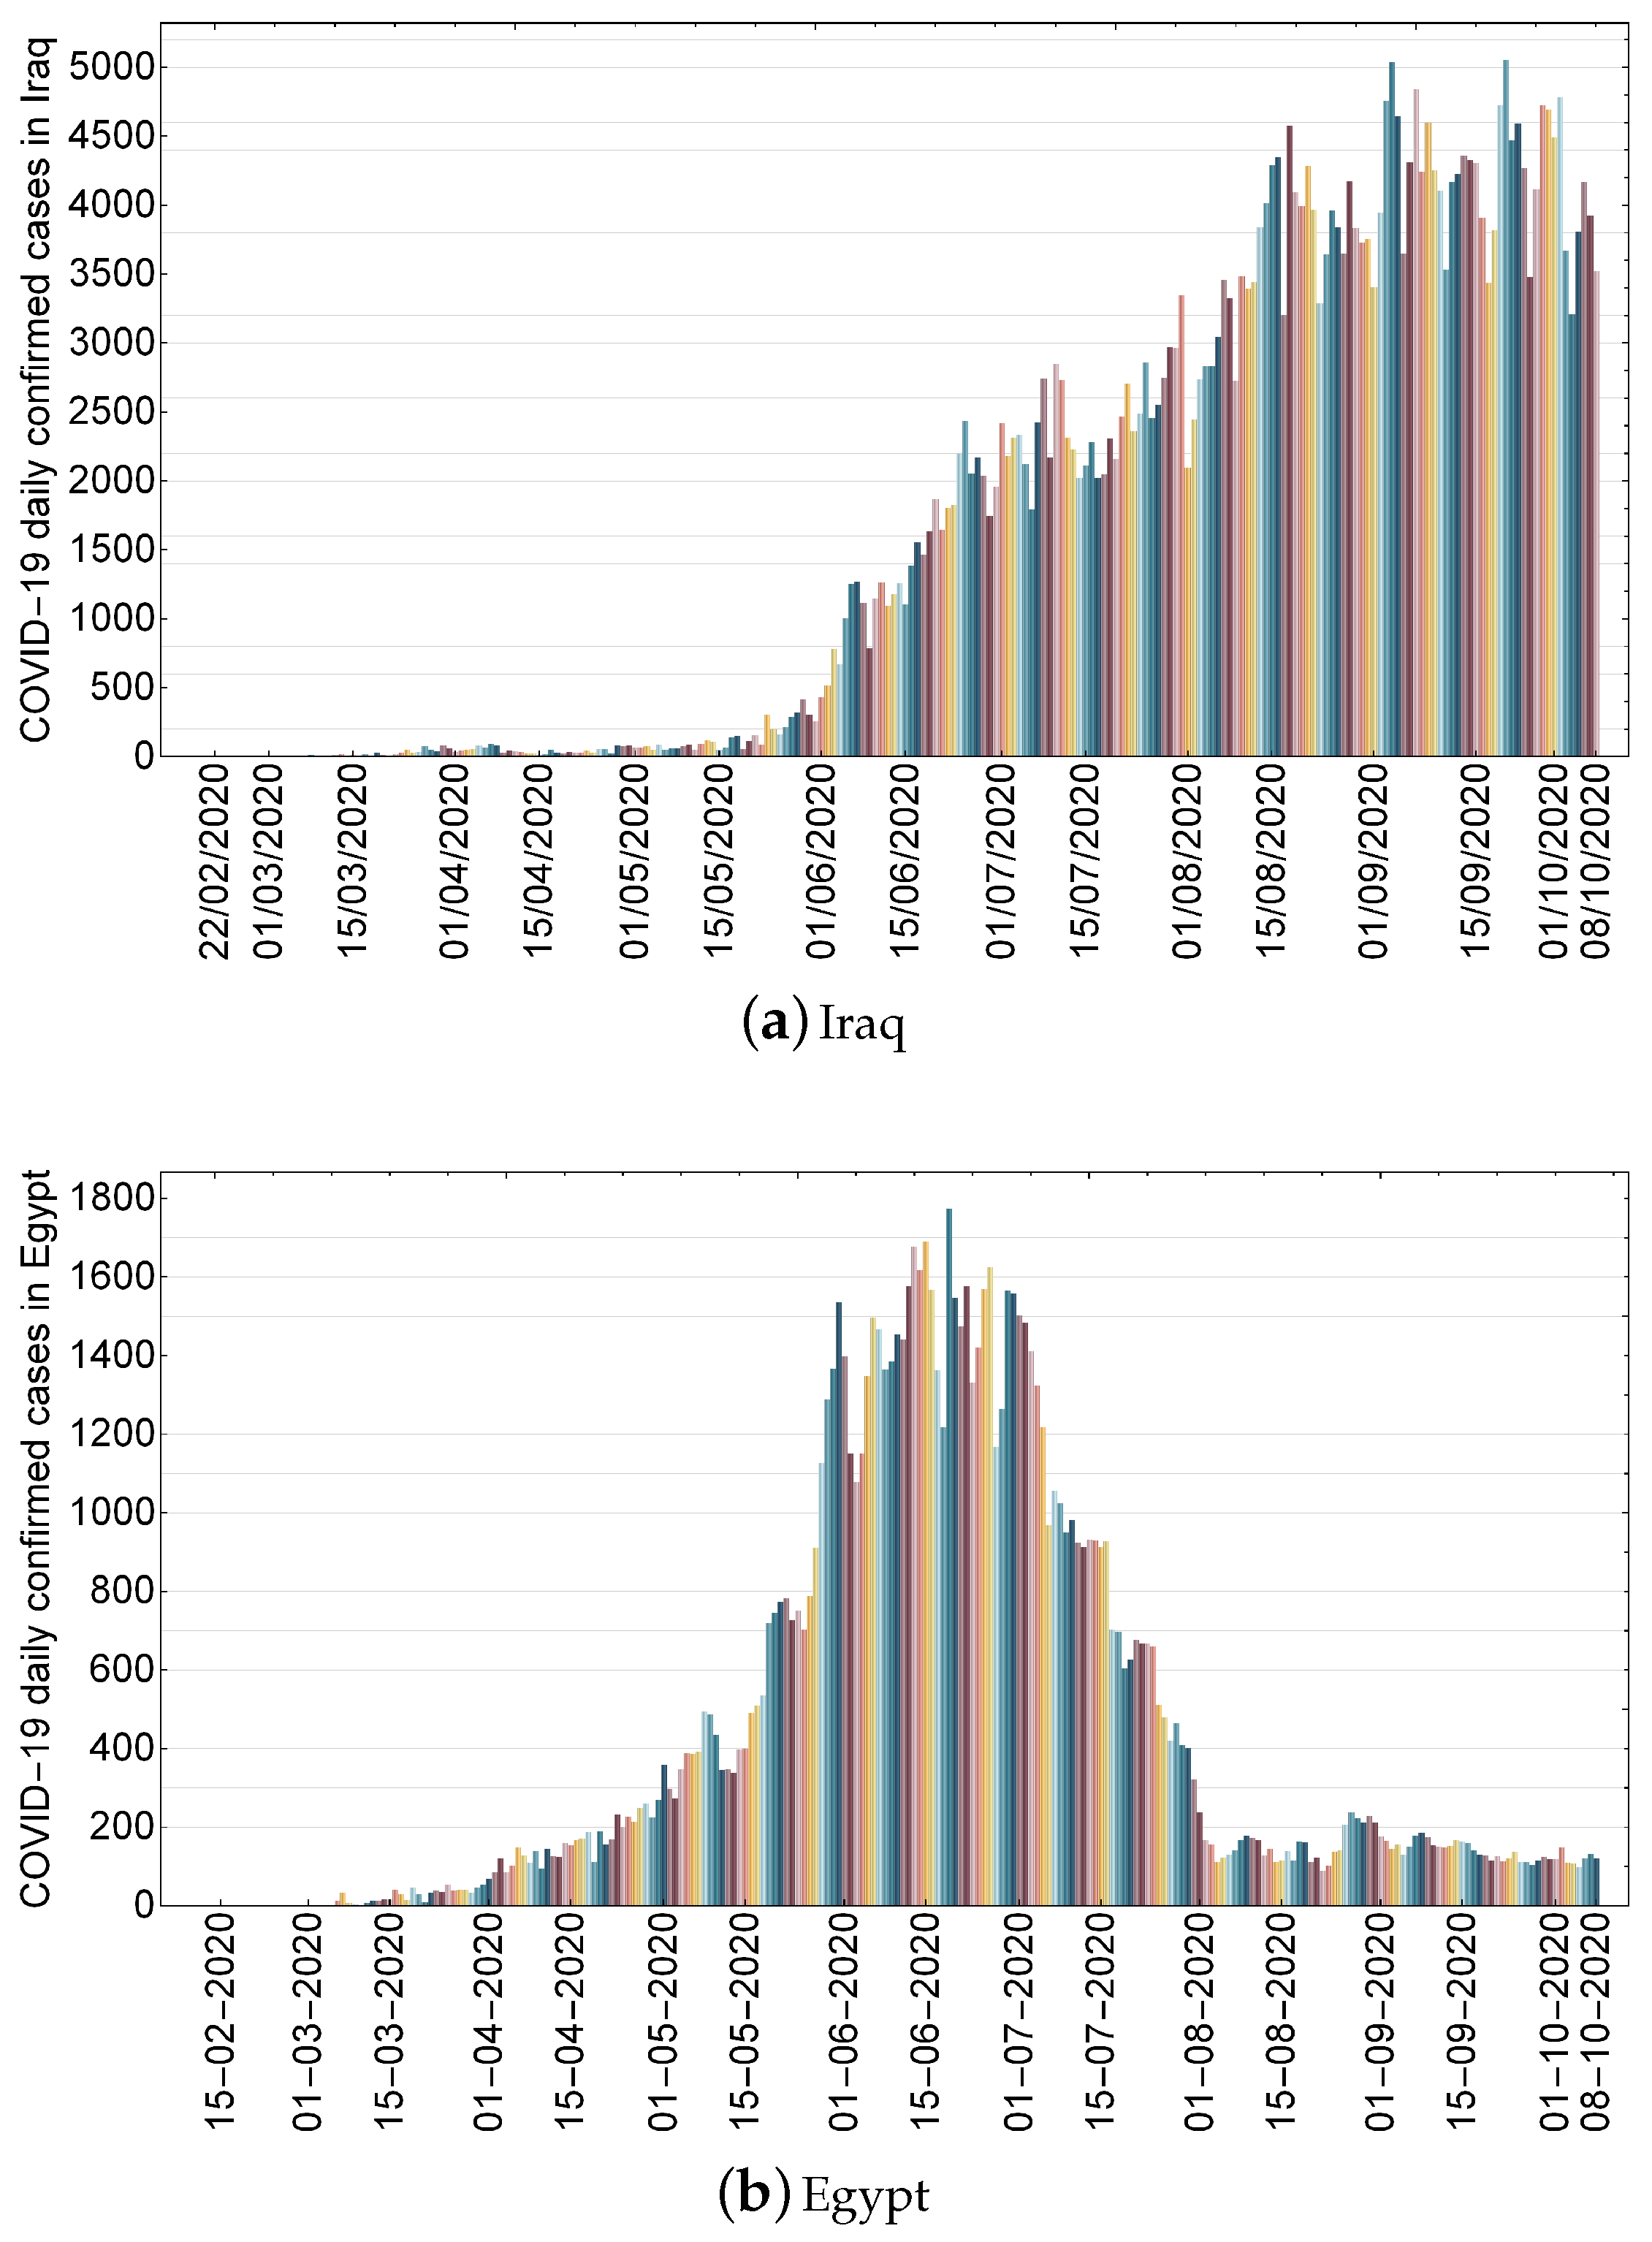 Processes Free Full Text Modeling Control And Prediction Of The Spread Of Covid 19 Using Compartmental Logistic And Gauss Models A Case Study In Iraq And Egypt Html